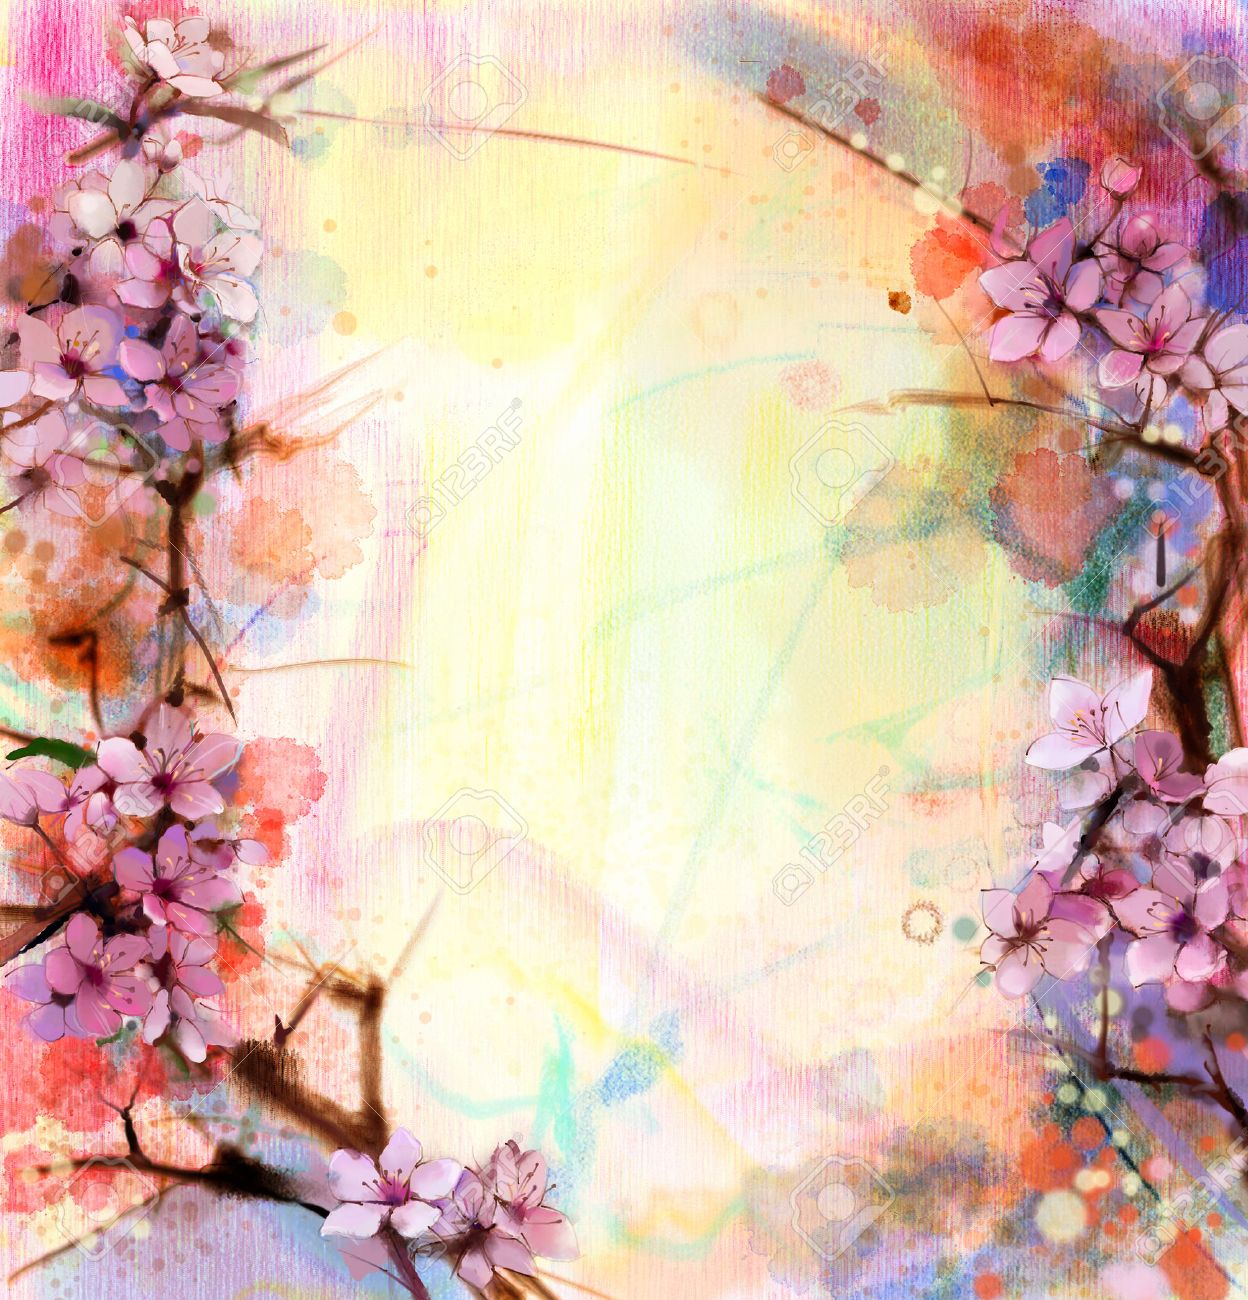 watercolor painting cherry blossoms japanese cherry pink sakura floral in soft color over blurred